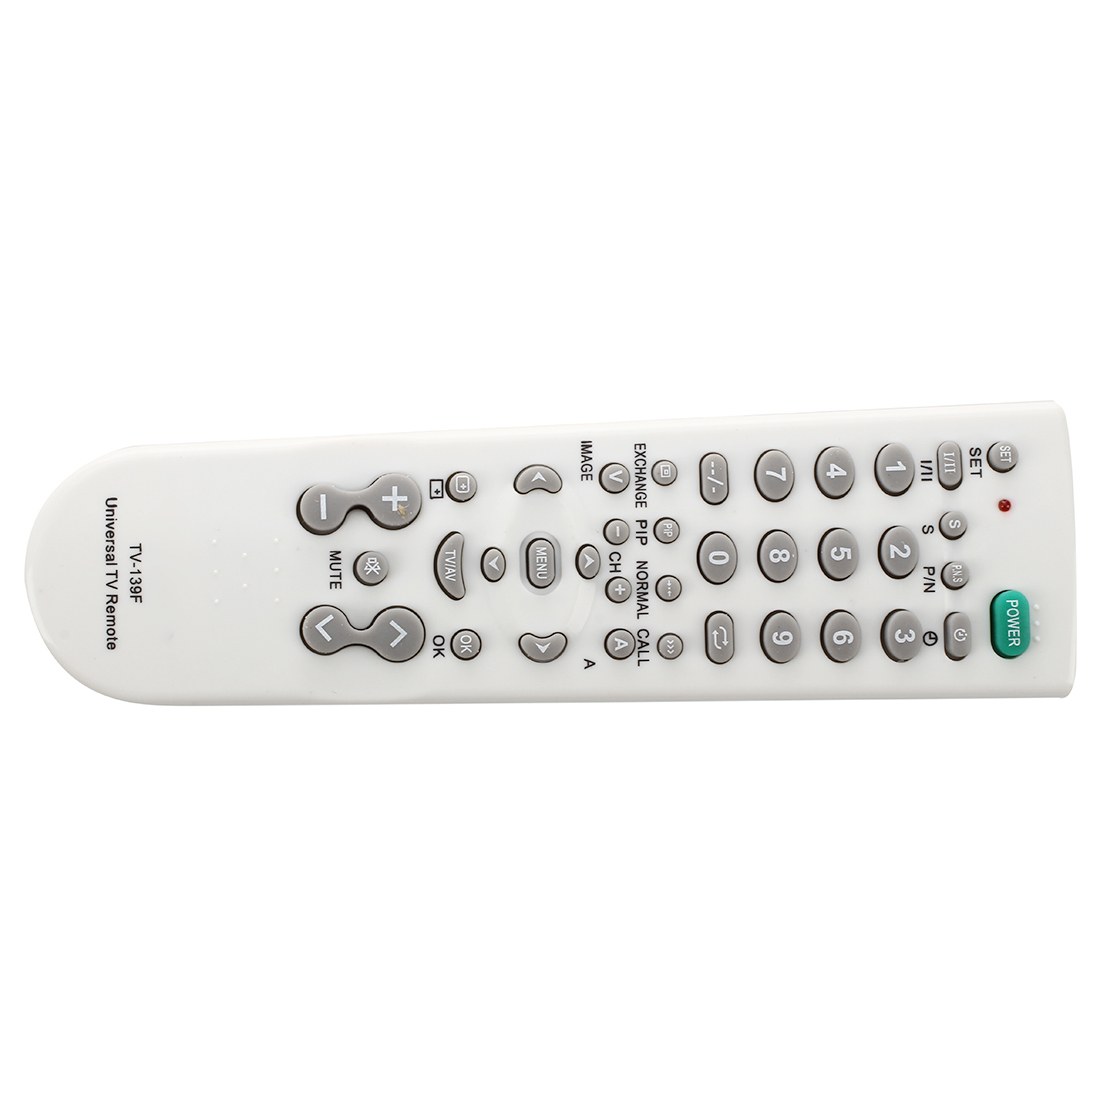 Universal Remote Controller Control Gadget for TV Sets